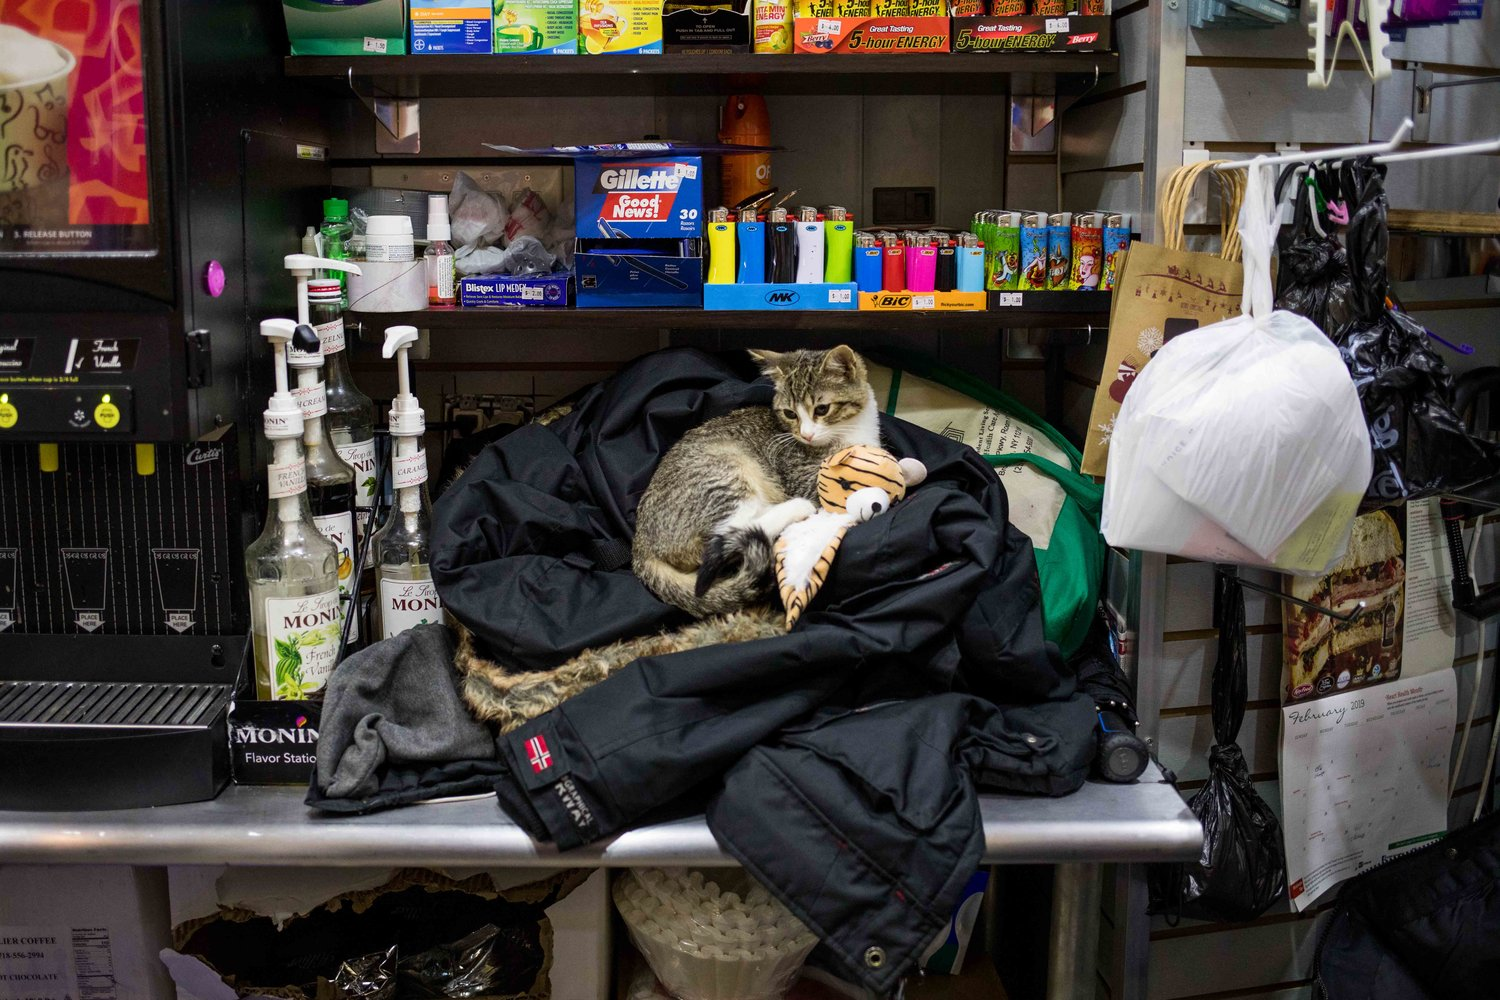 Luna, a 2-month-old kitten, rests on a jacket behind the counter at Ismael's Gourmet Deli on West 238th Street in Kingsbridge. She was catnapped from the bodega Feb. 23. A wanted poster from the 50th Precinct and widespread media coverage galvanized the community to help find Luna, who was returned safe and sound Feb. 28.